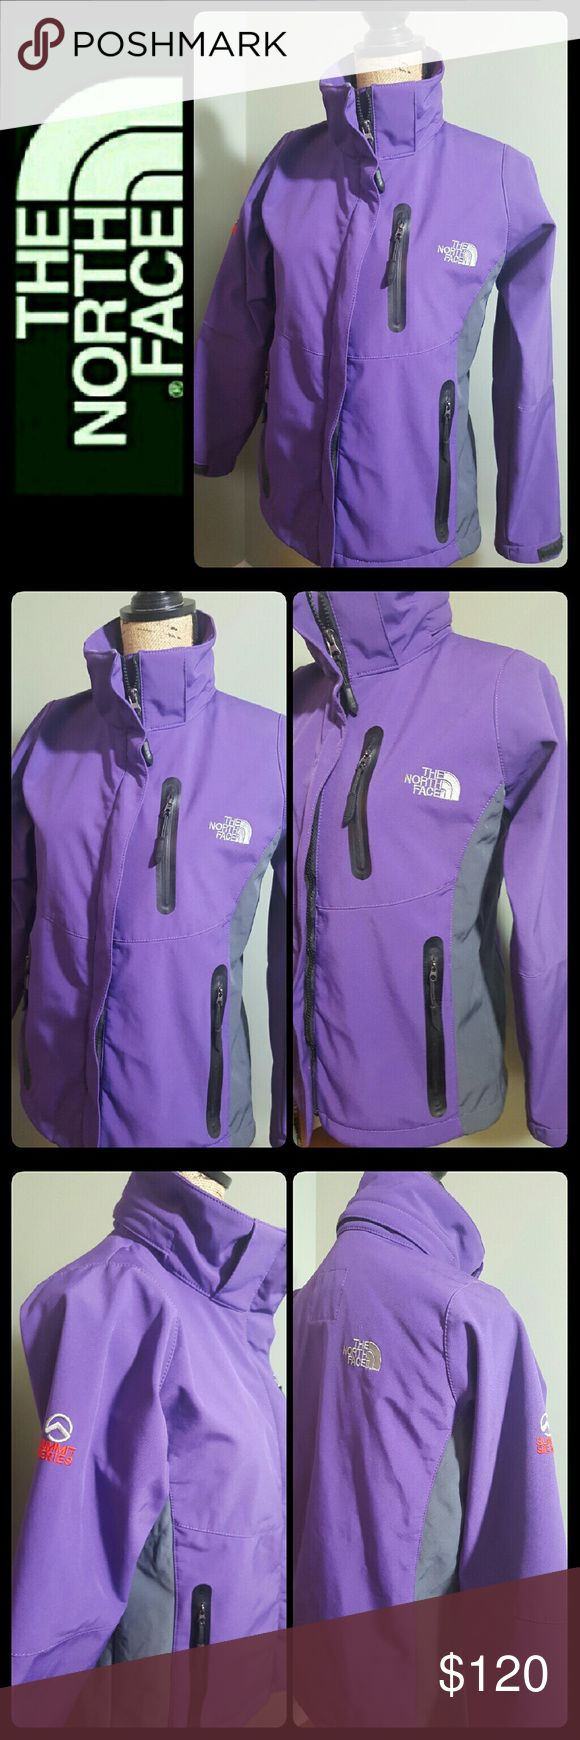 North Face Women's Summit Series Jacket The North Face Signature in Summit Series Collection! Perfect Everyday Use Around Town, Waterproof Jacket, Gorgeous in Purple Shade with Gray Accent! Size S, Used in Excellent Condition! North Face Jackets & Coats